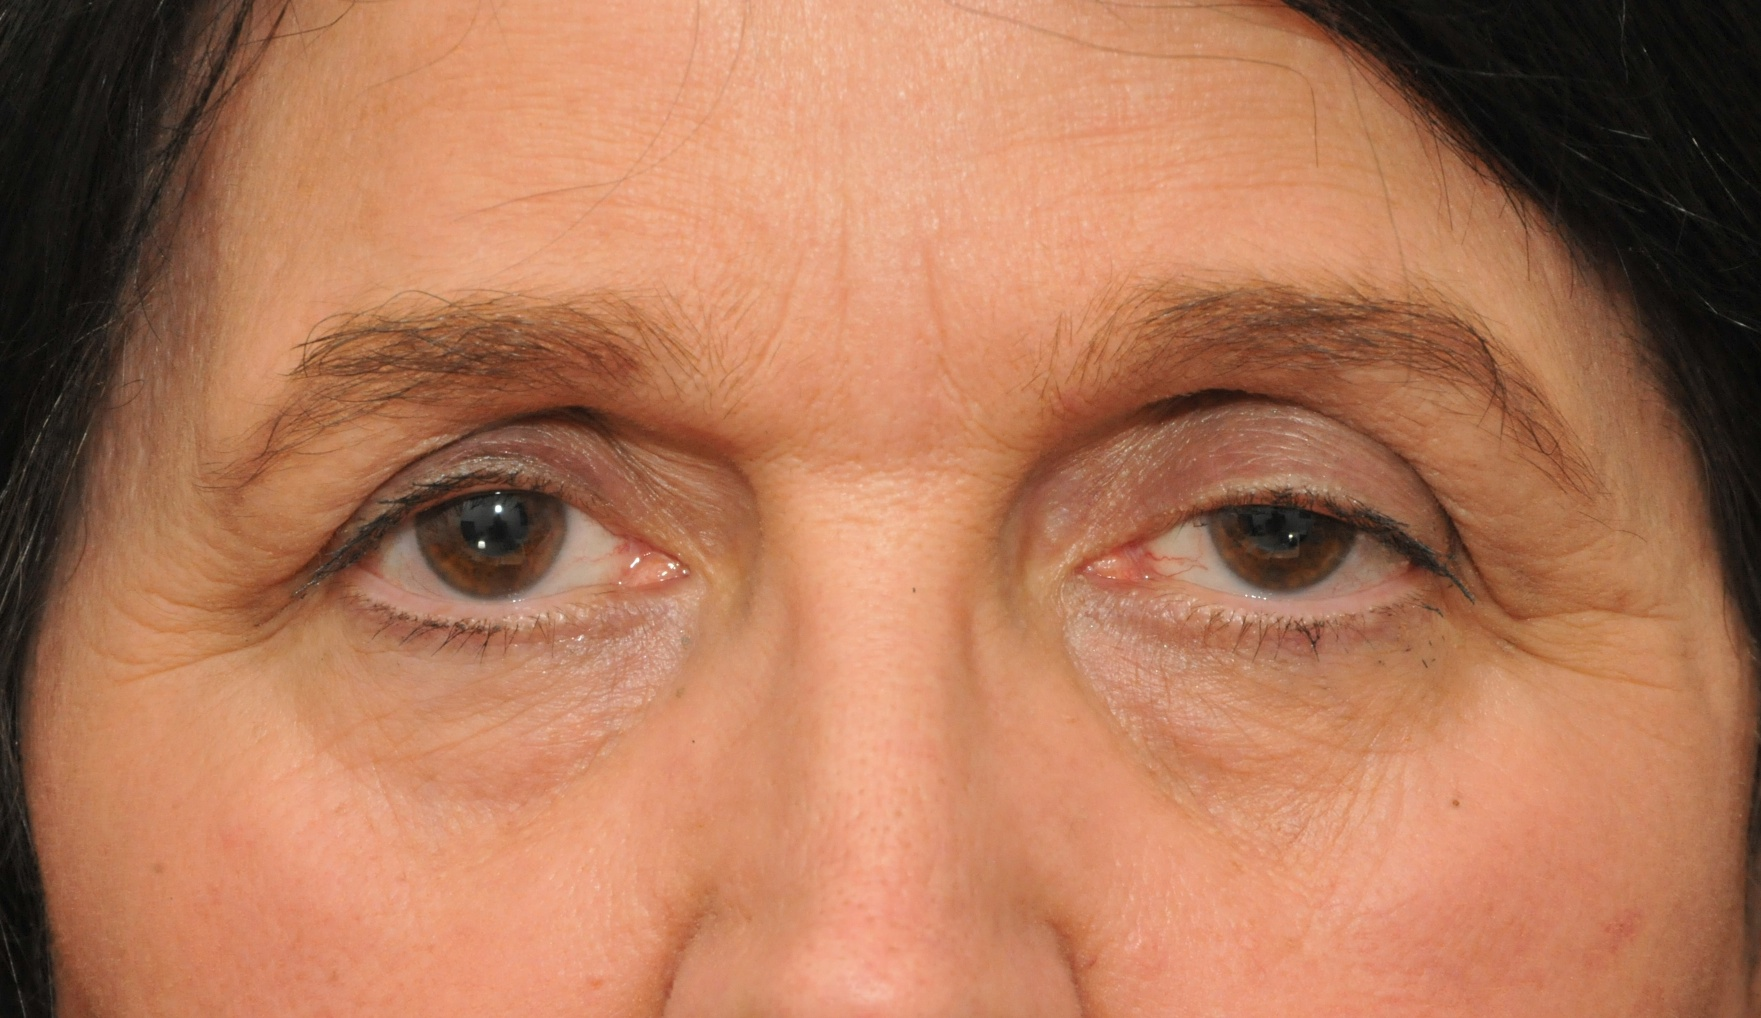 Droopy Eyelid Treatment | Droopy Eyelid Surgery | Ptosis ...